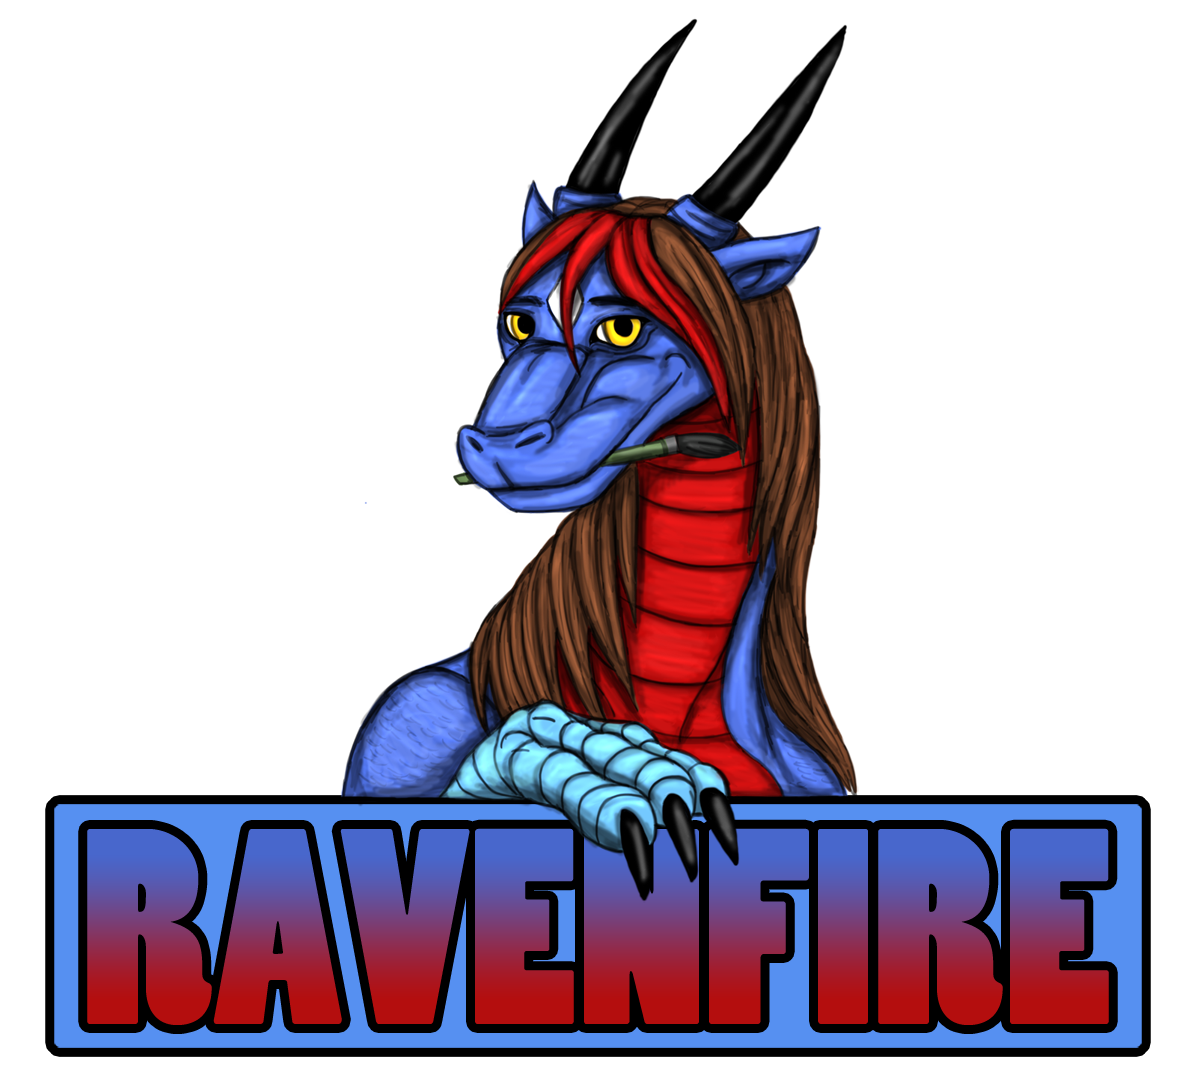 Ravenfire5's Profile Picture